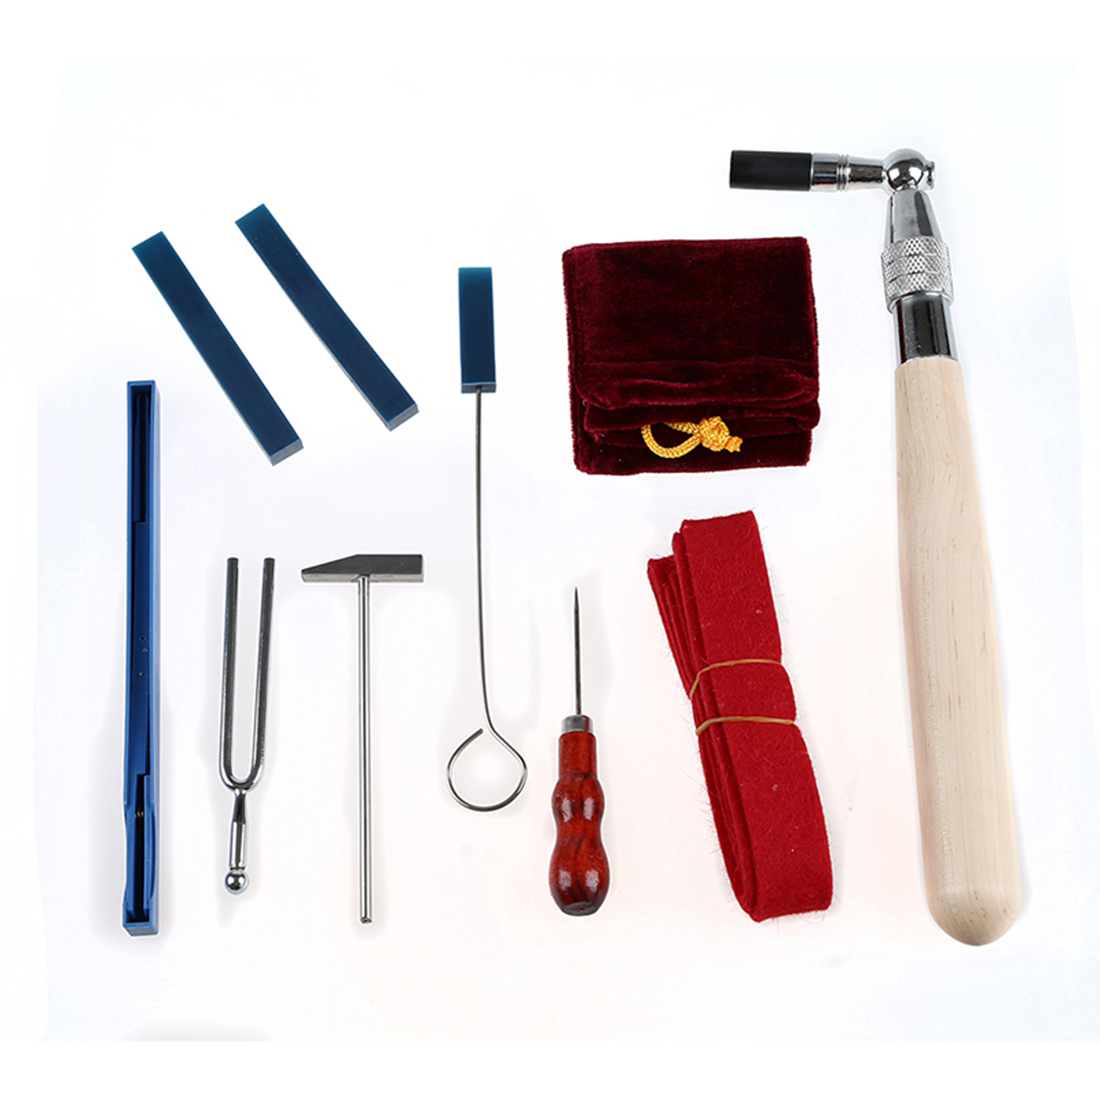 Best price 11Pcs Professional Piano Tuning Tool Kit Maintenance Equip with Case